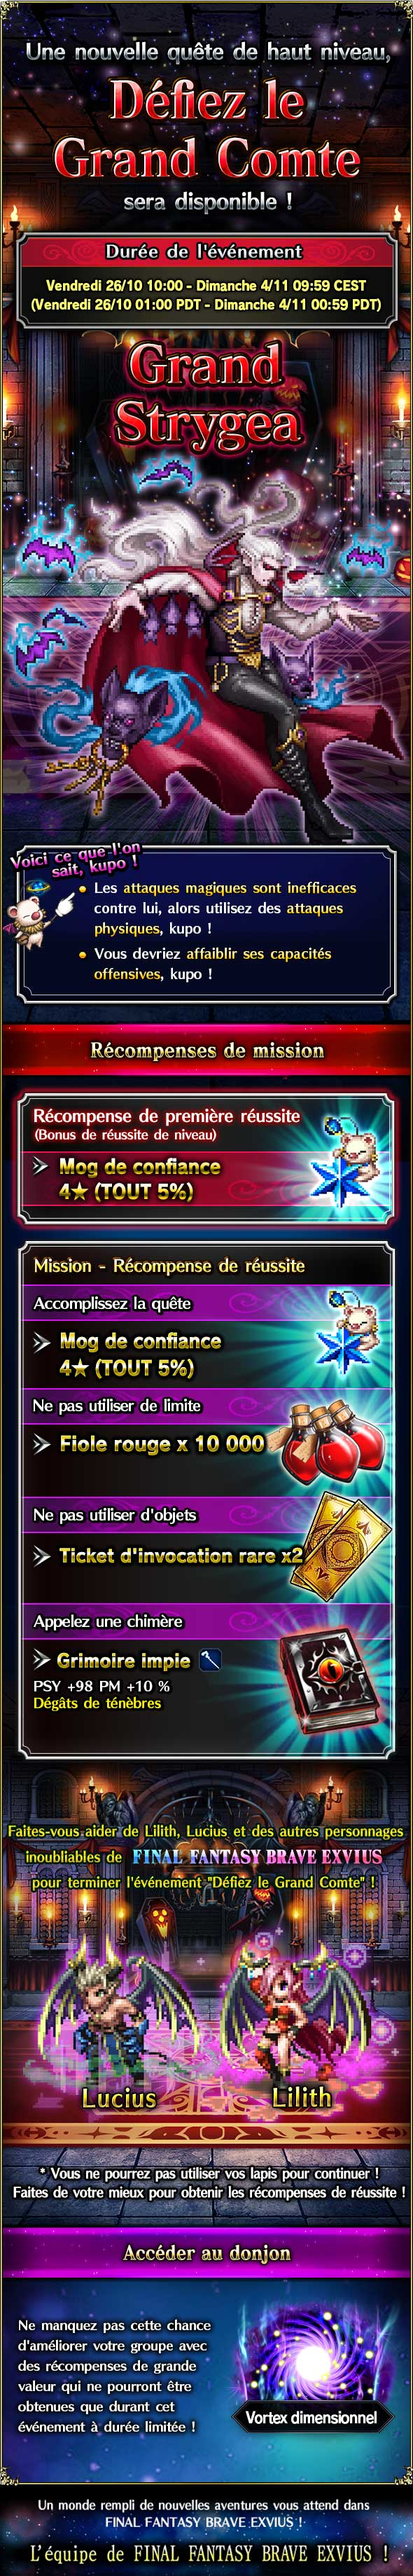 Trial MK FFBE Halloween - Défiez le Grand Comte - du 26/10/18 au 04/11/18 Halloween2018GreatCountTrial